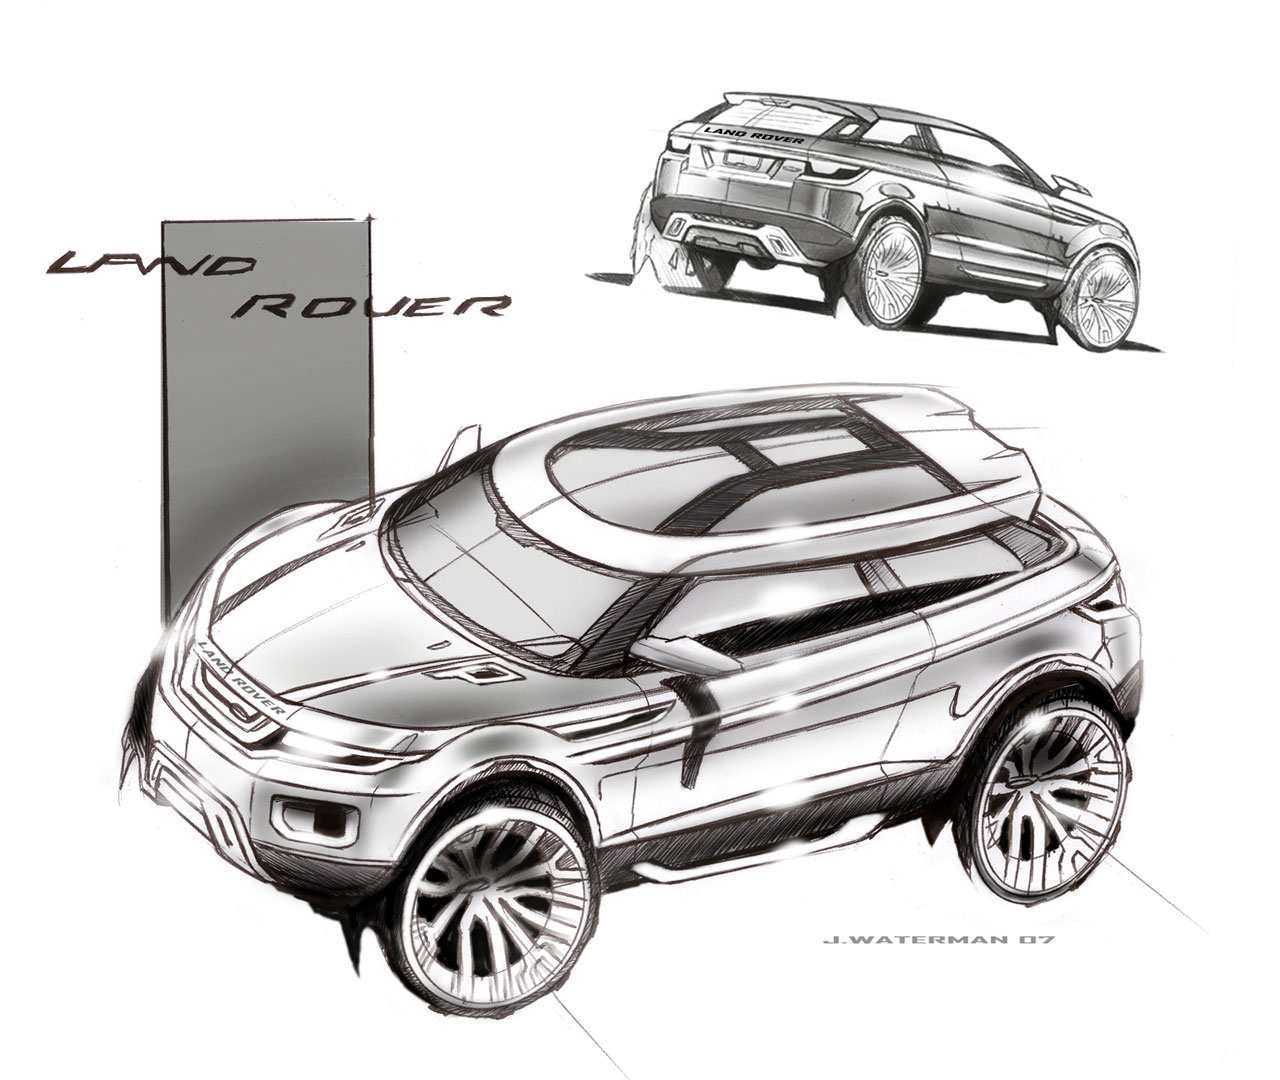 2011 land rover dc100 concept side 2 1280x960 wallpaper - 2011 Land Rover Dc100 Concept Side 2 1280x960 Wallpaper 46